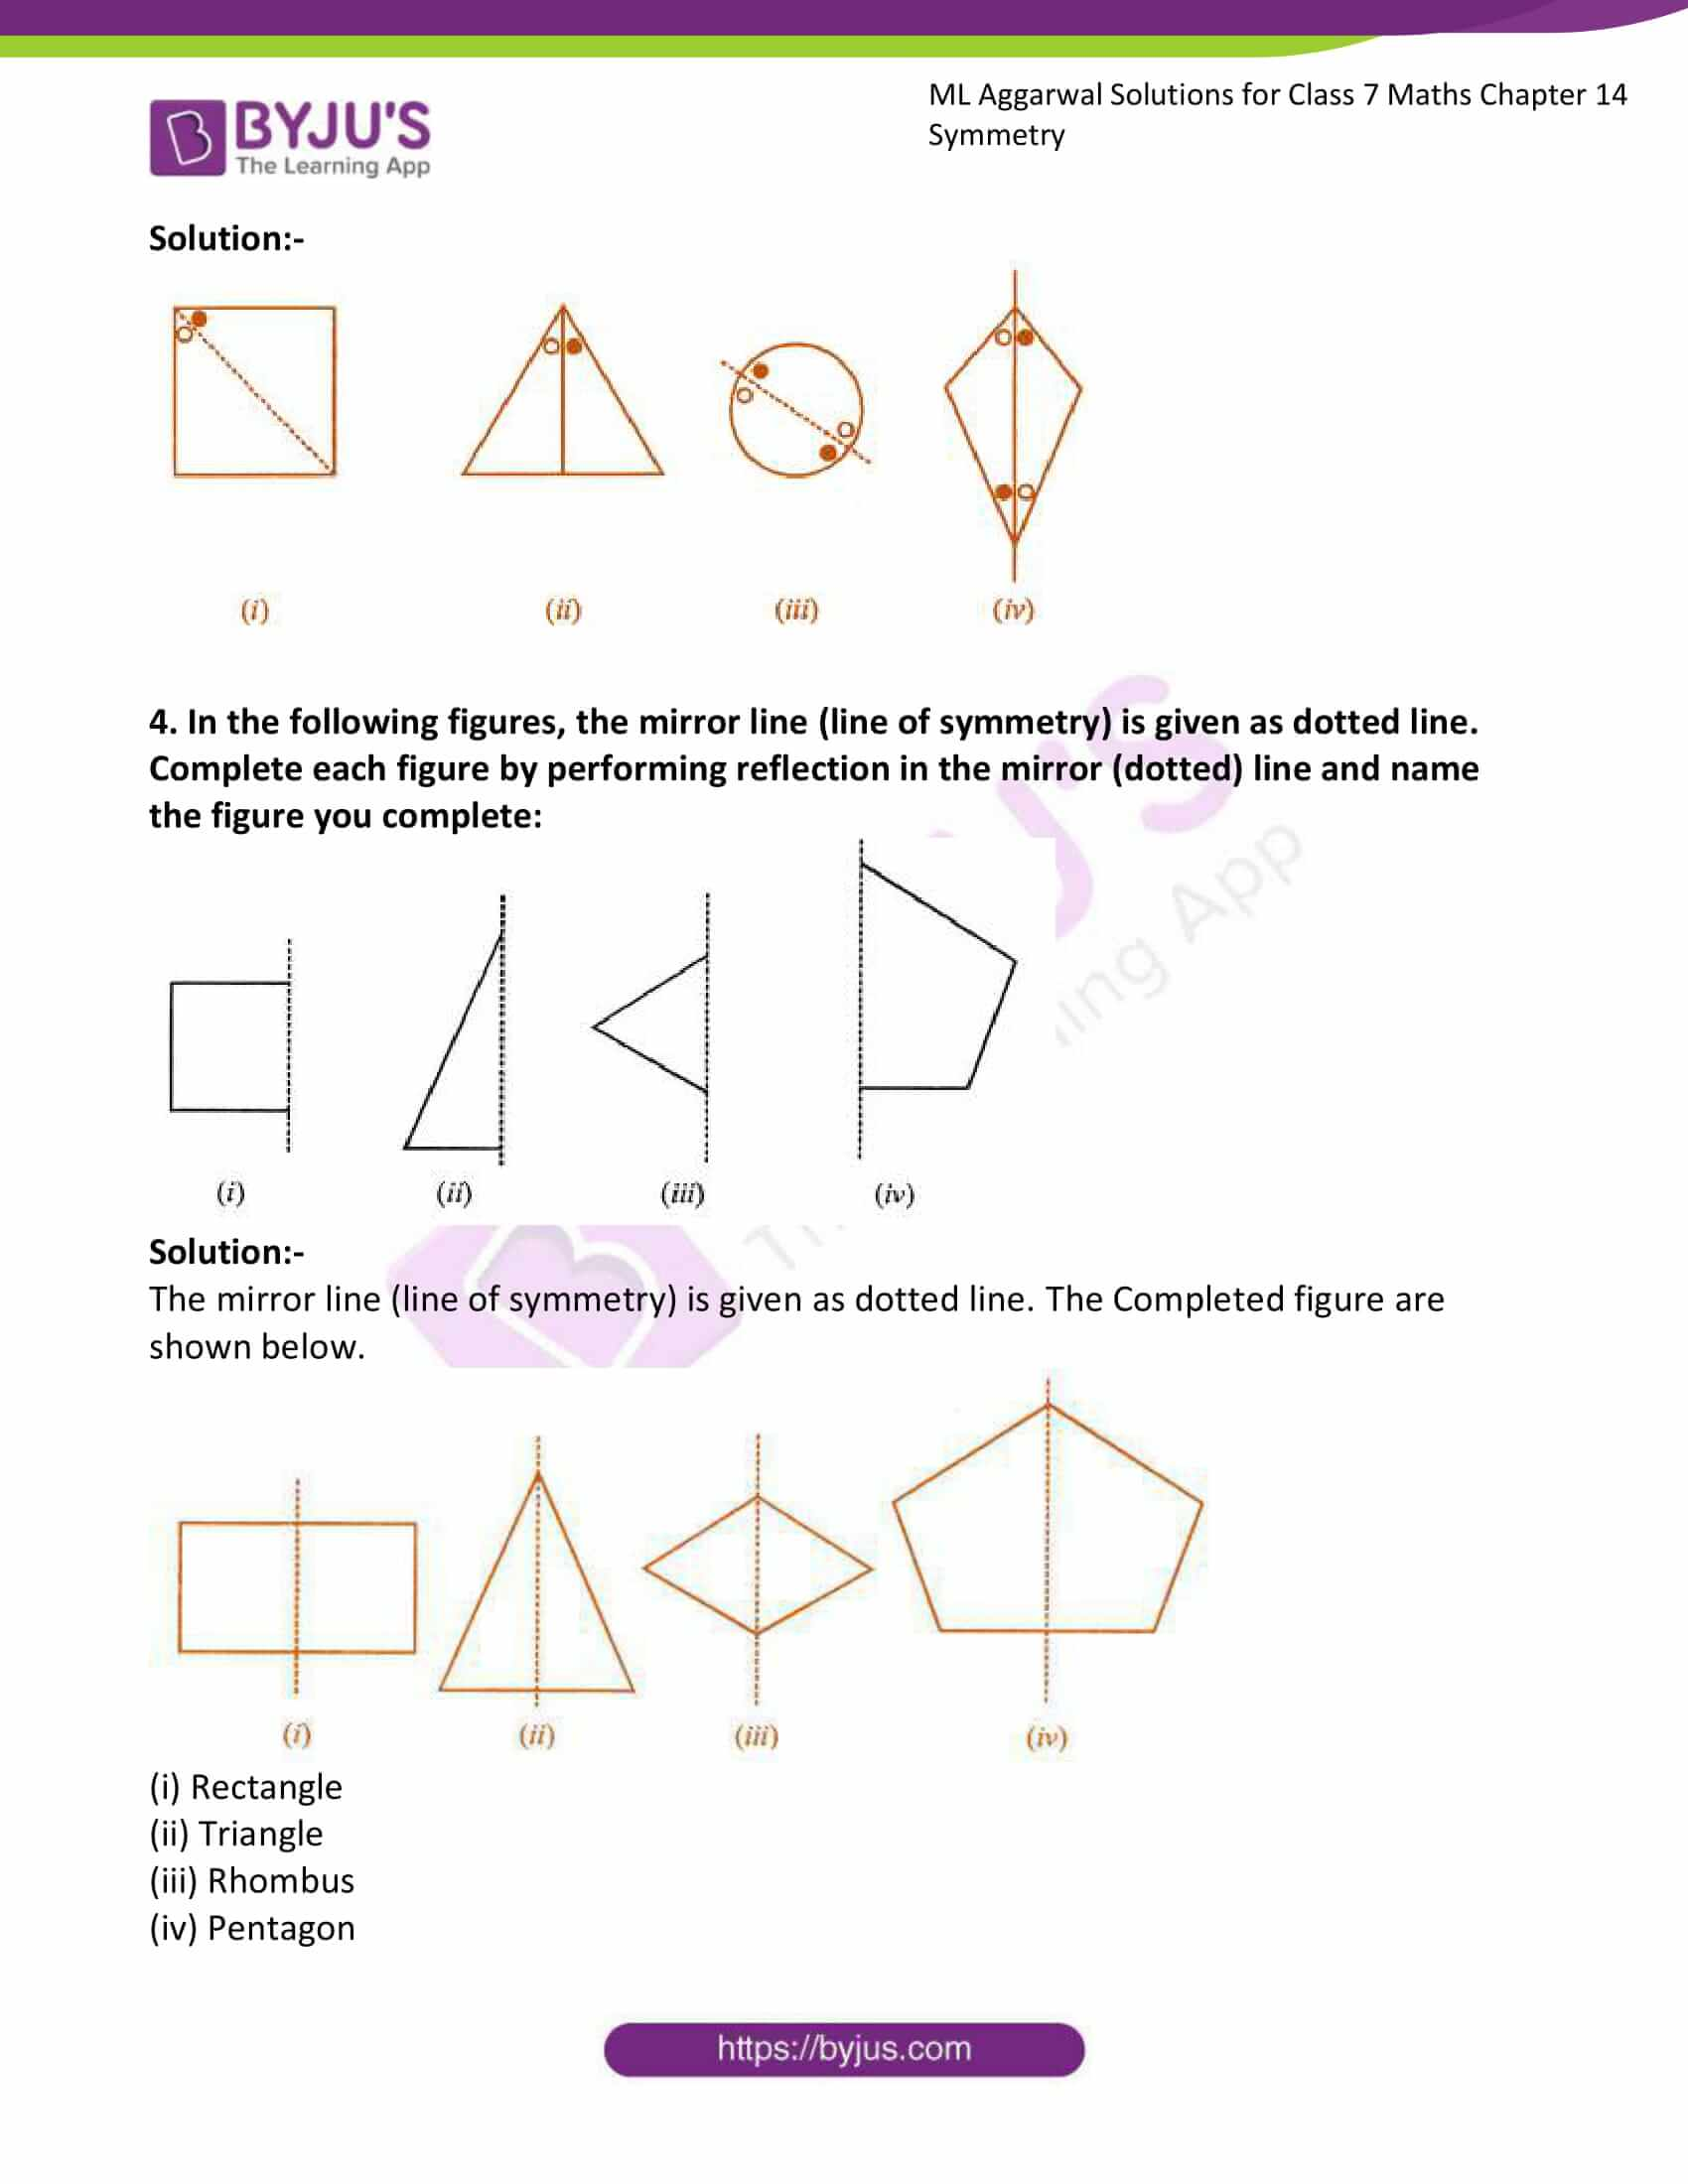 ml aggarwal solutions for class 7 maths chapter 14 3